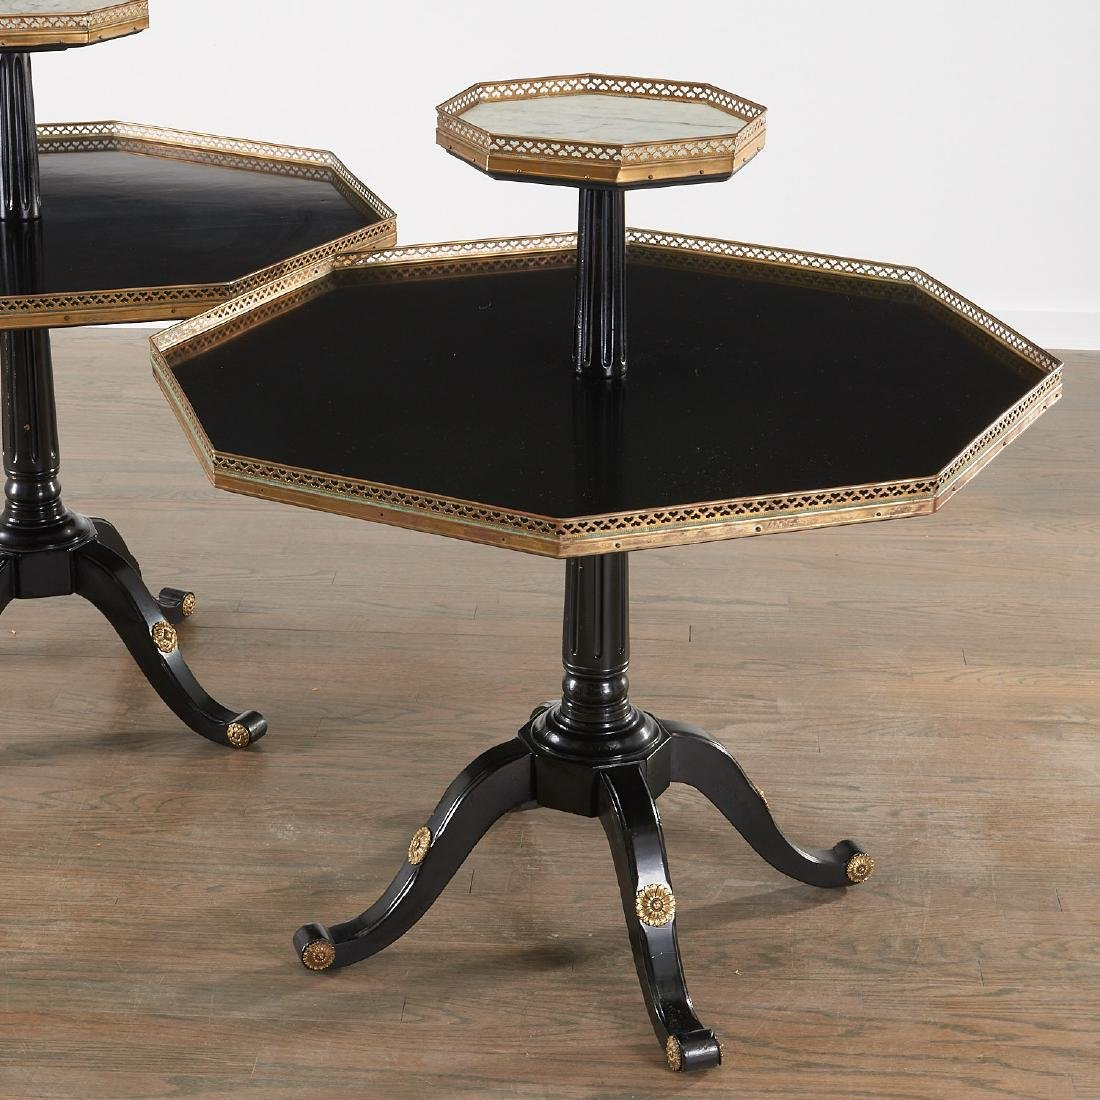 Pair Maison Jansen style tiered side tables